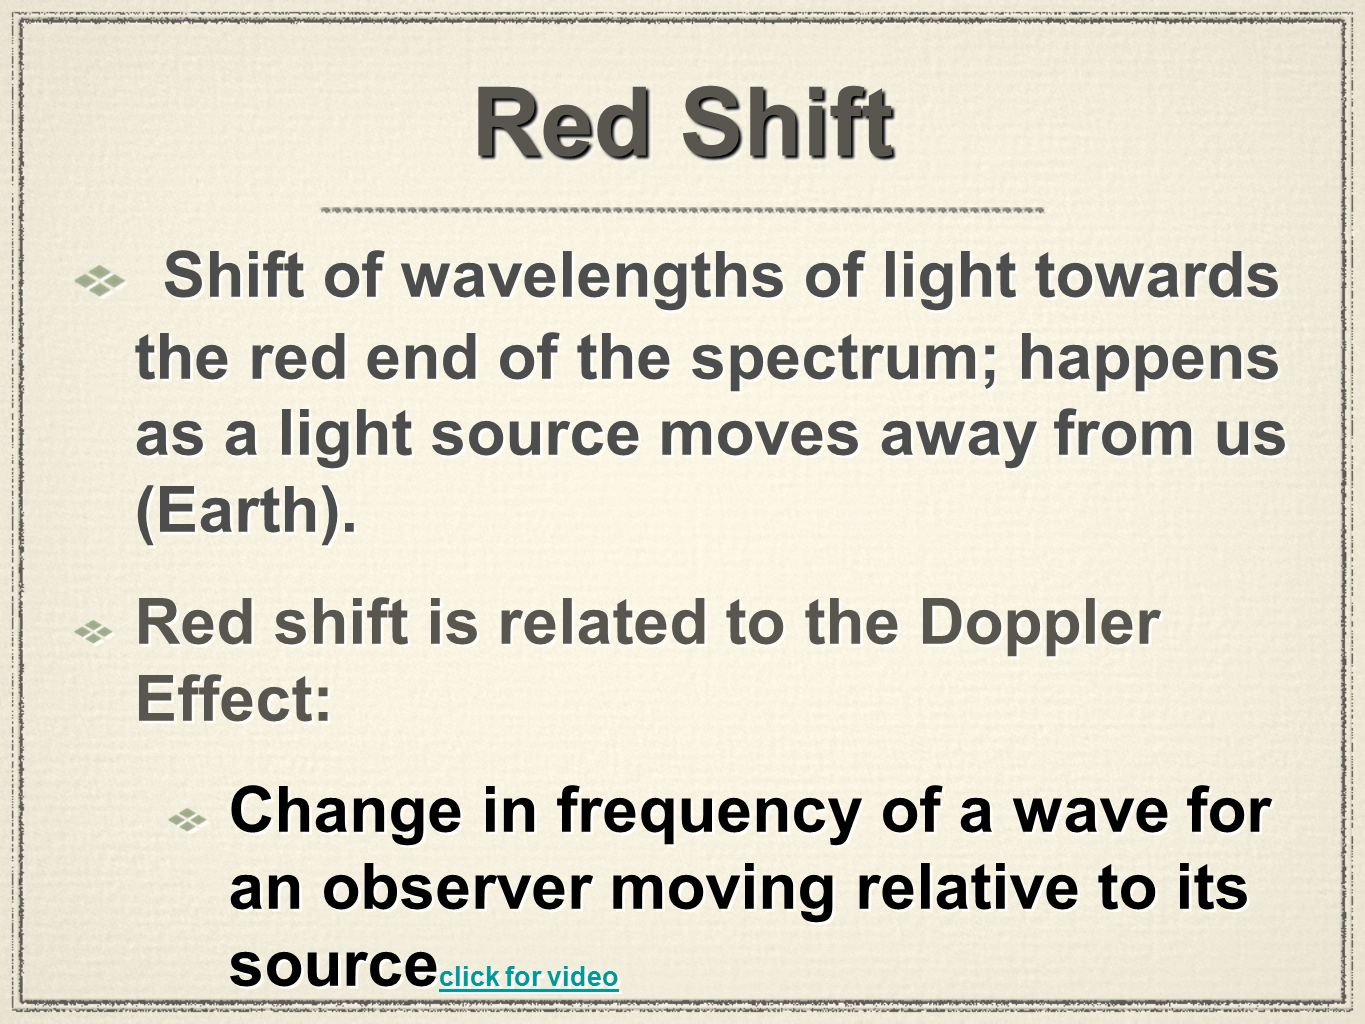 Red Shift Shift of wavelengths of light towards the red end of the spectrum; happens as a light source moves away from us (Earth). Red shift is relate